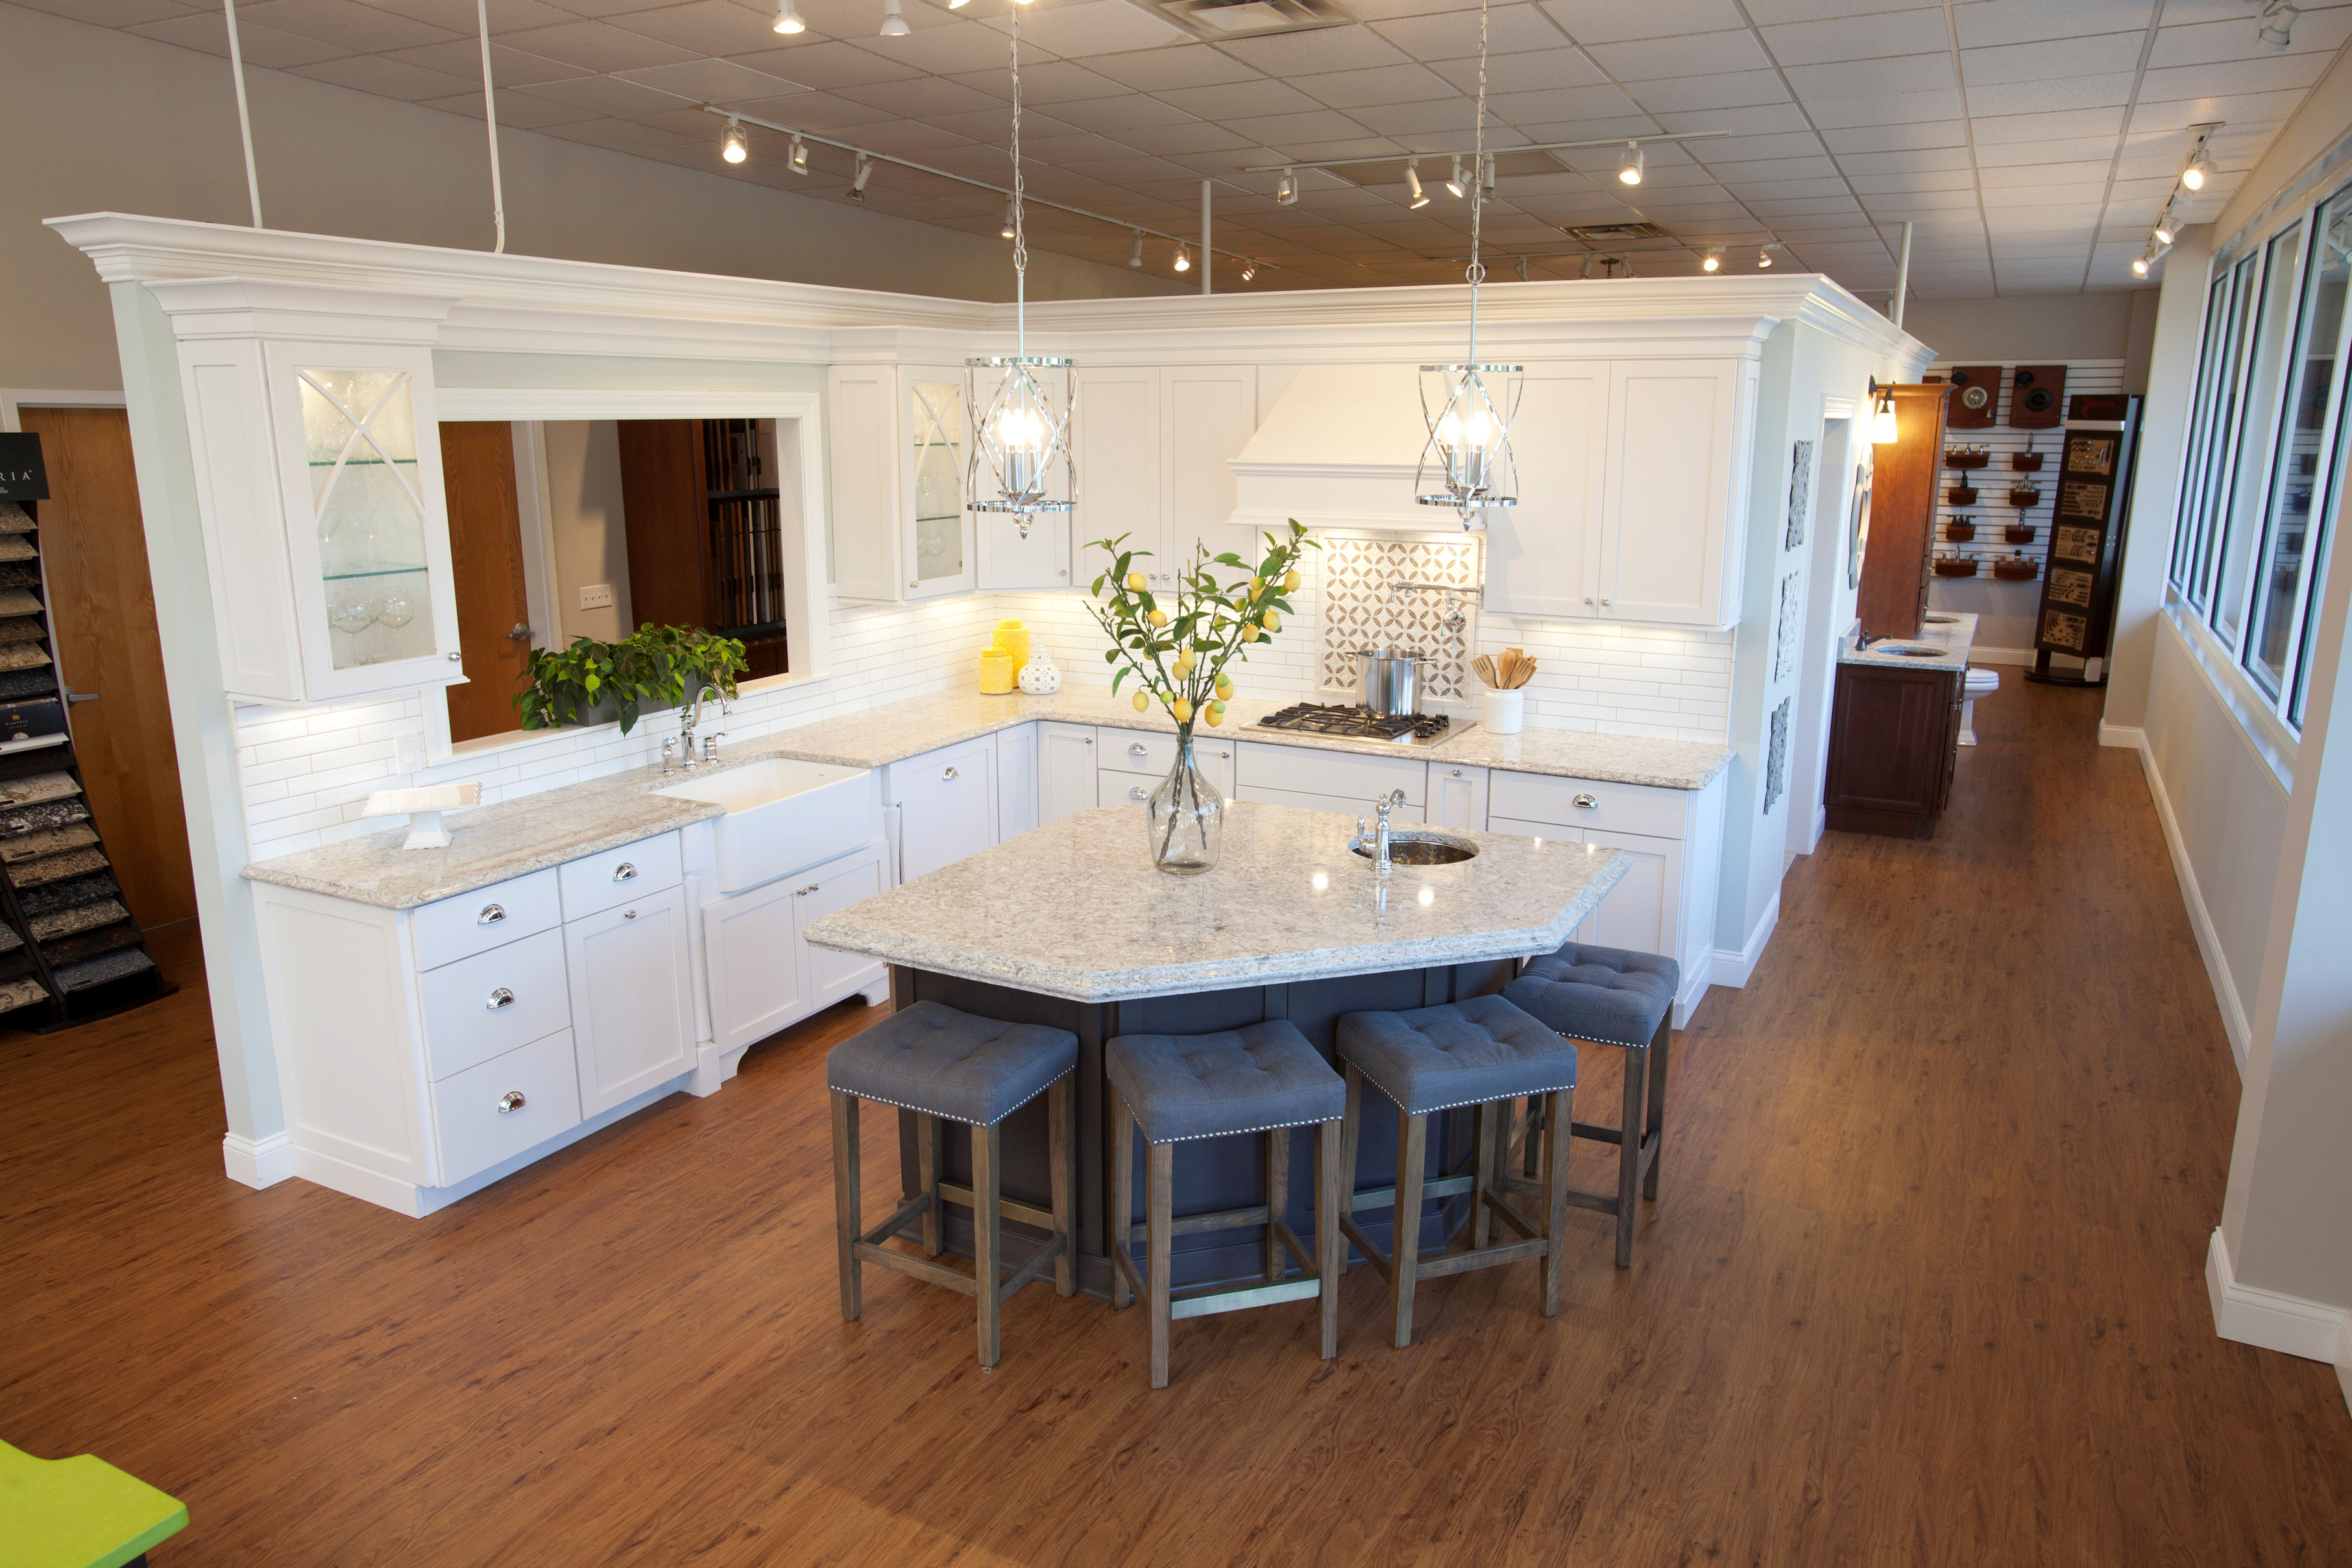 Kitchens, Baths, Tile, Hardwood, Countertops, And Of Course Plumbing  Supplies Make This A One Stop Shop For Contractors And Homeowners.